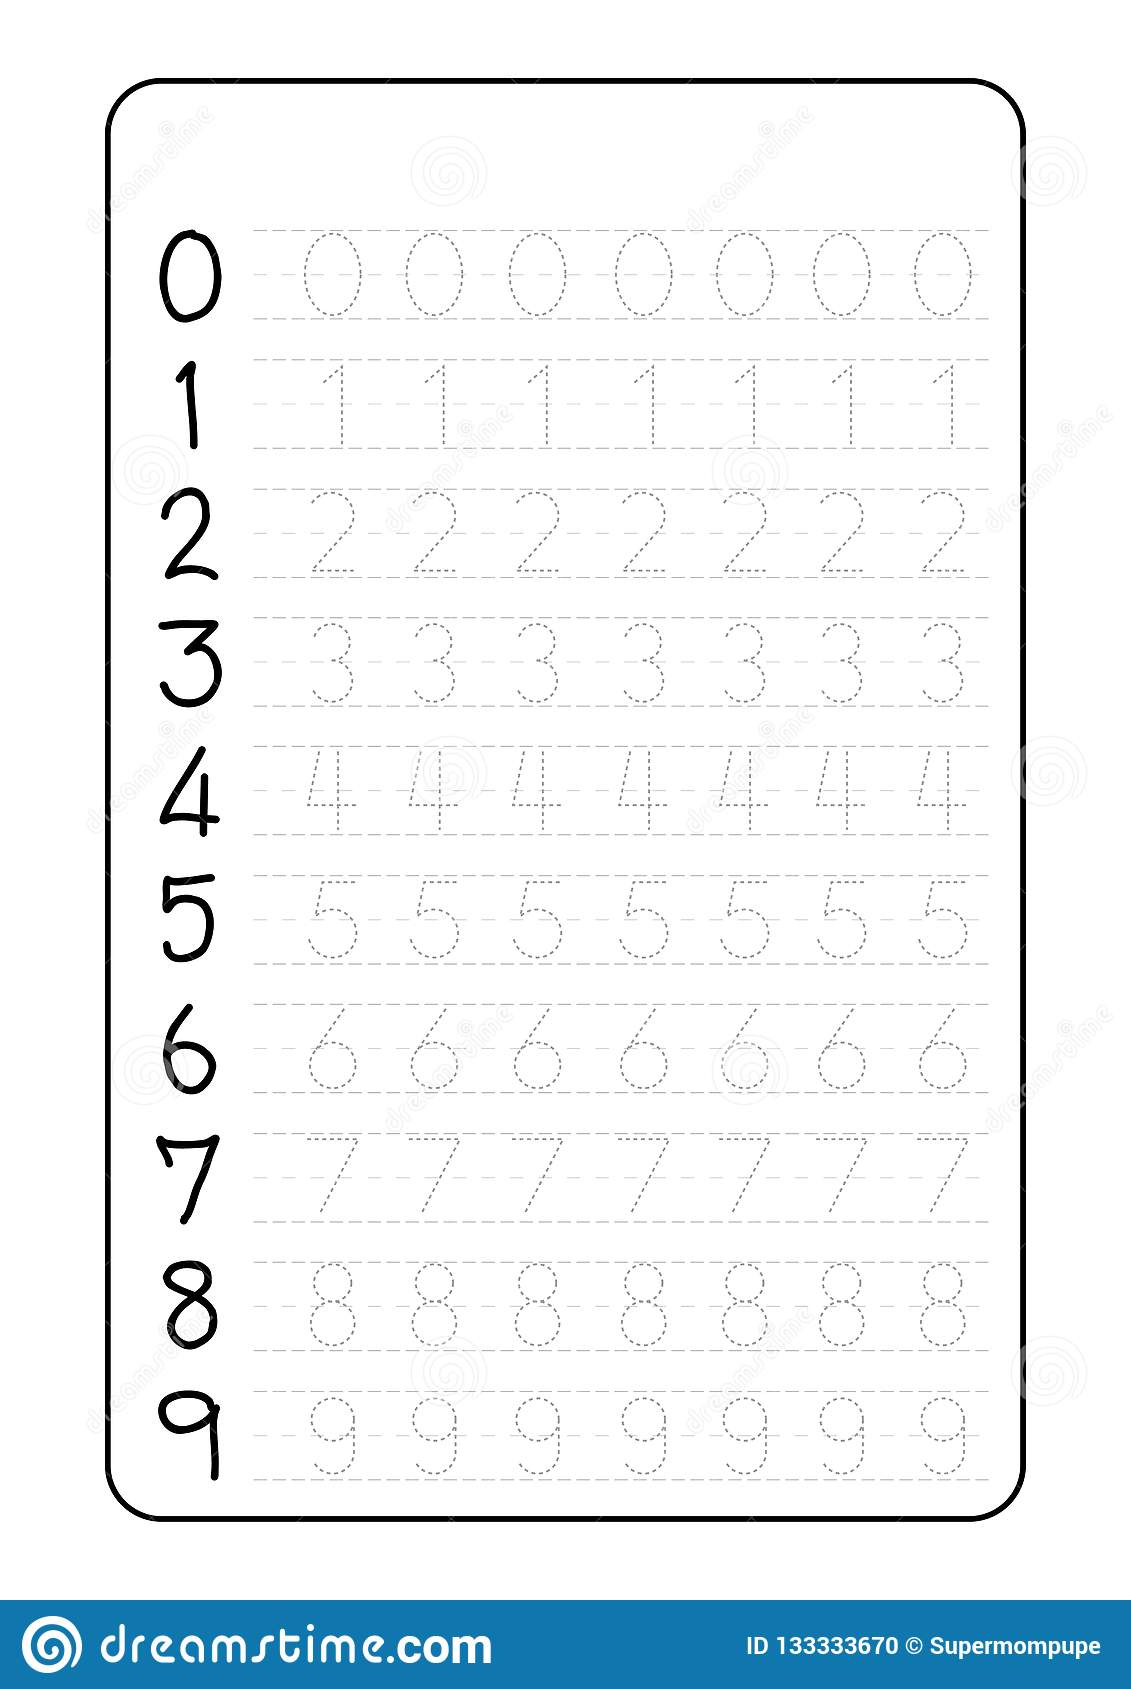 Alphabet Number Tracing